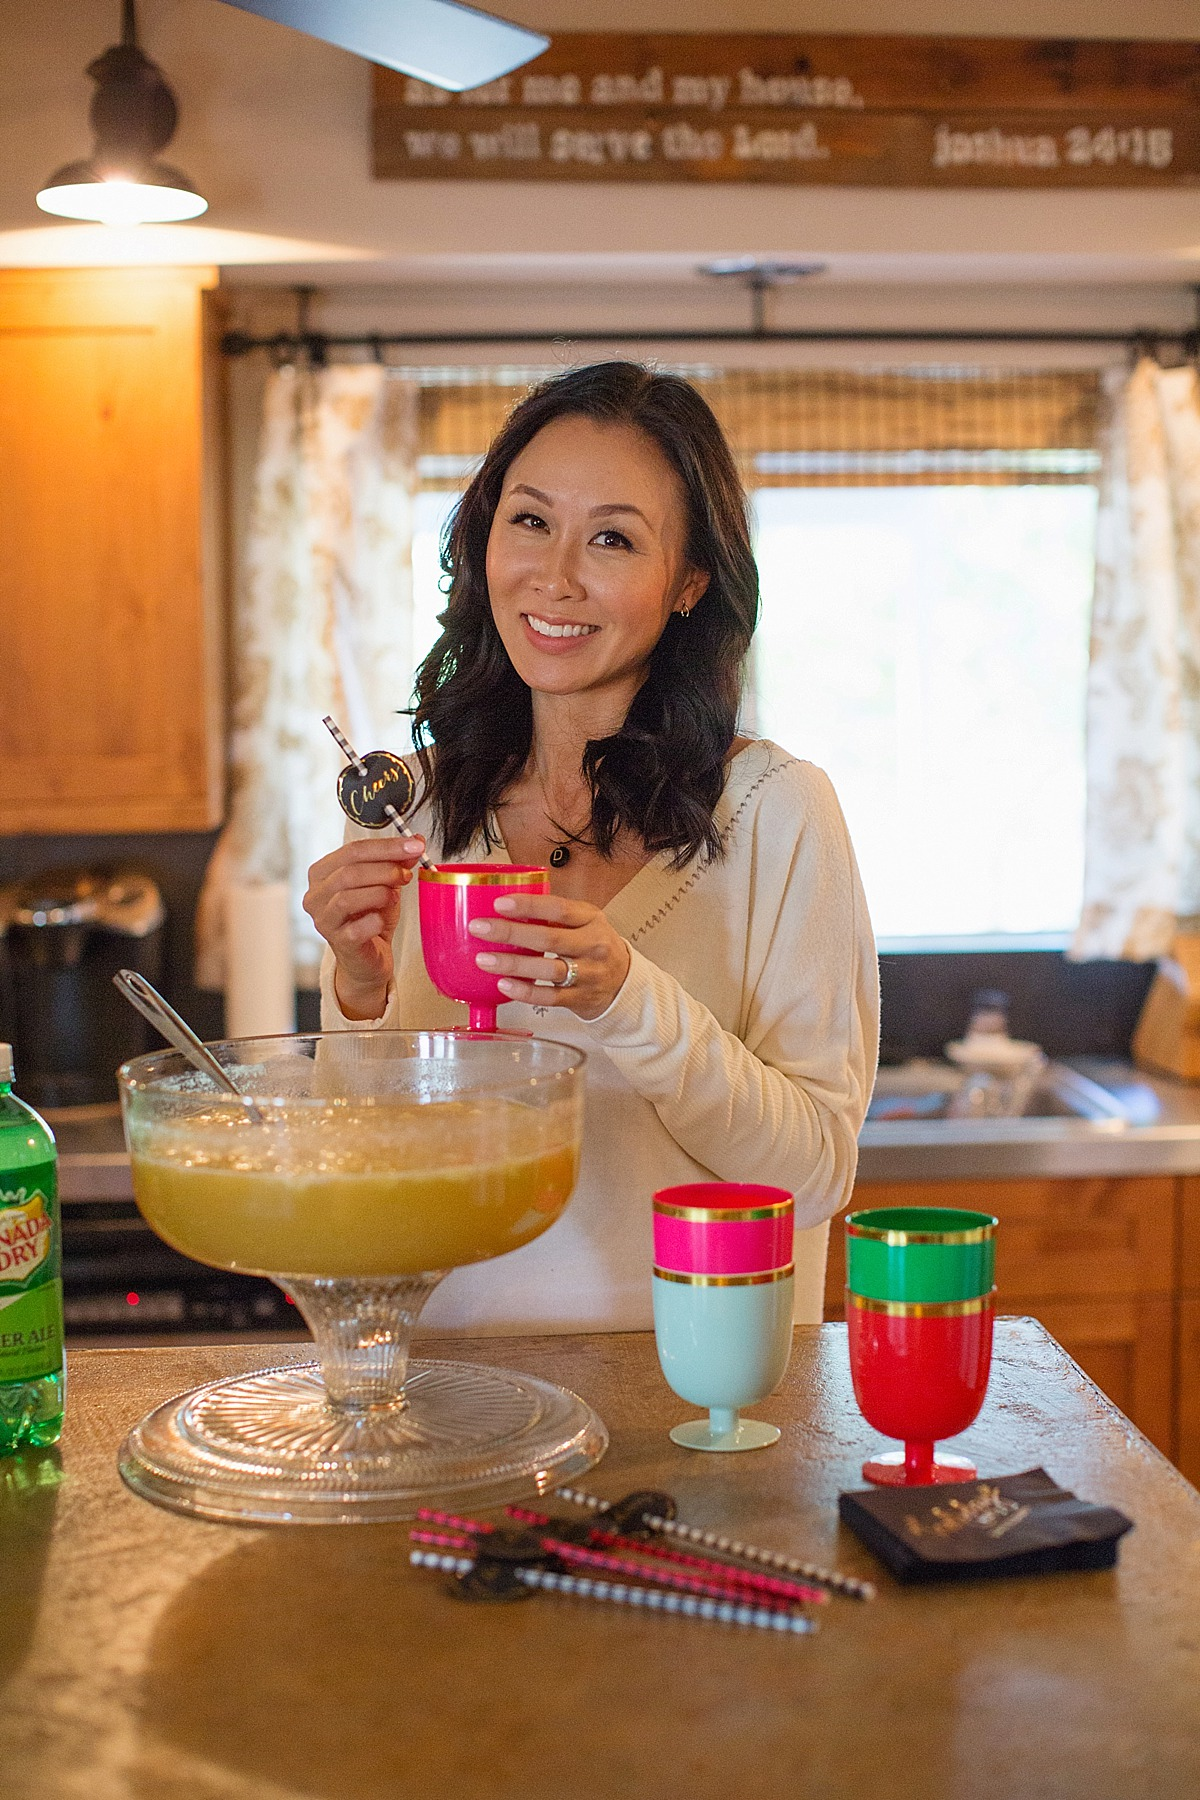 ginger-ale-canada-dry-punch-party-holidays-citrus-pineapple-bananas-recipie-easy-quick-1414